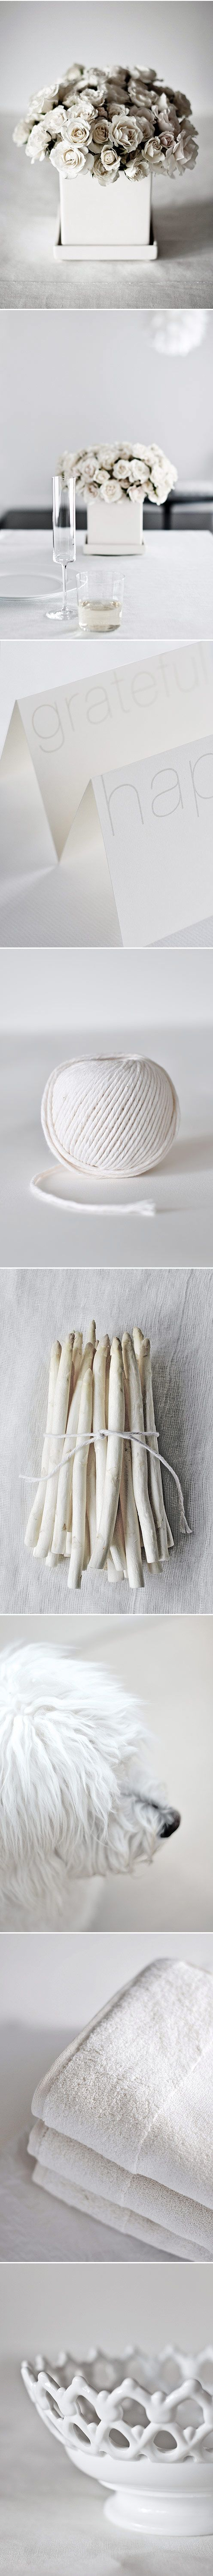 You may not want to rent a white dog for your wedding, but I love the all white inspiration found here.